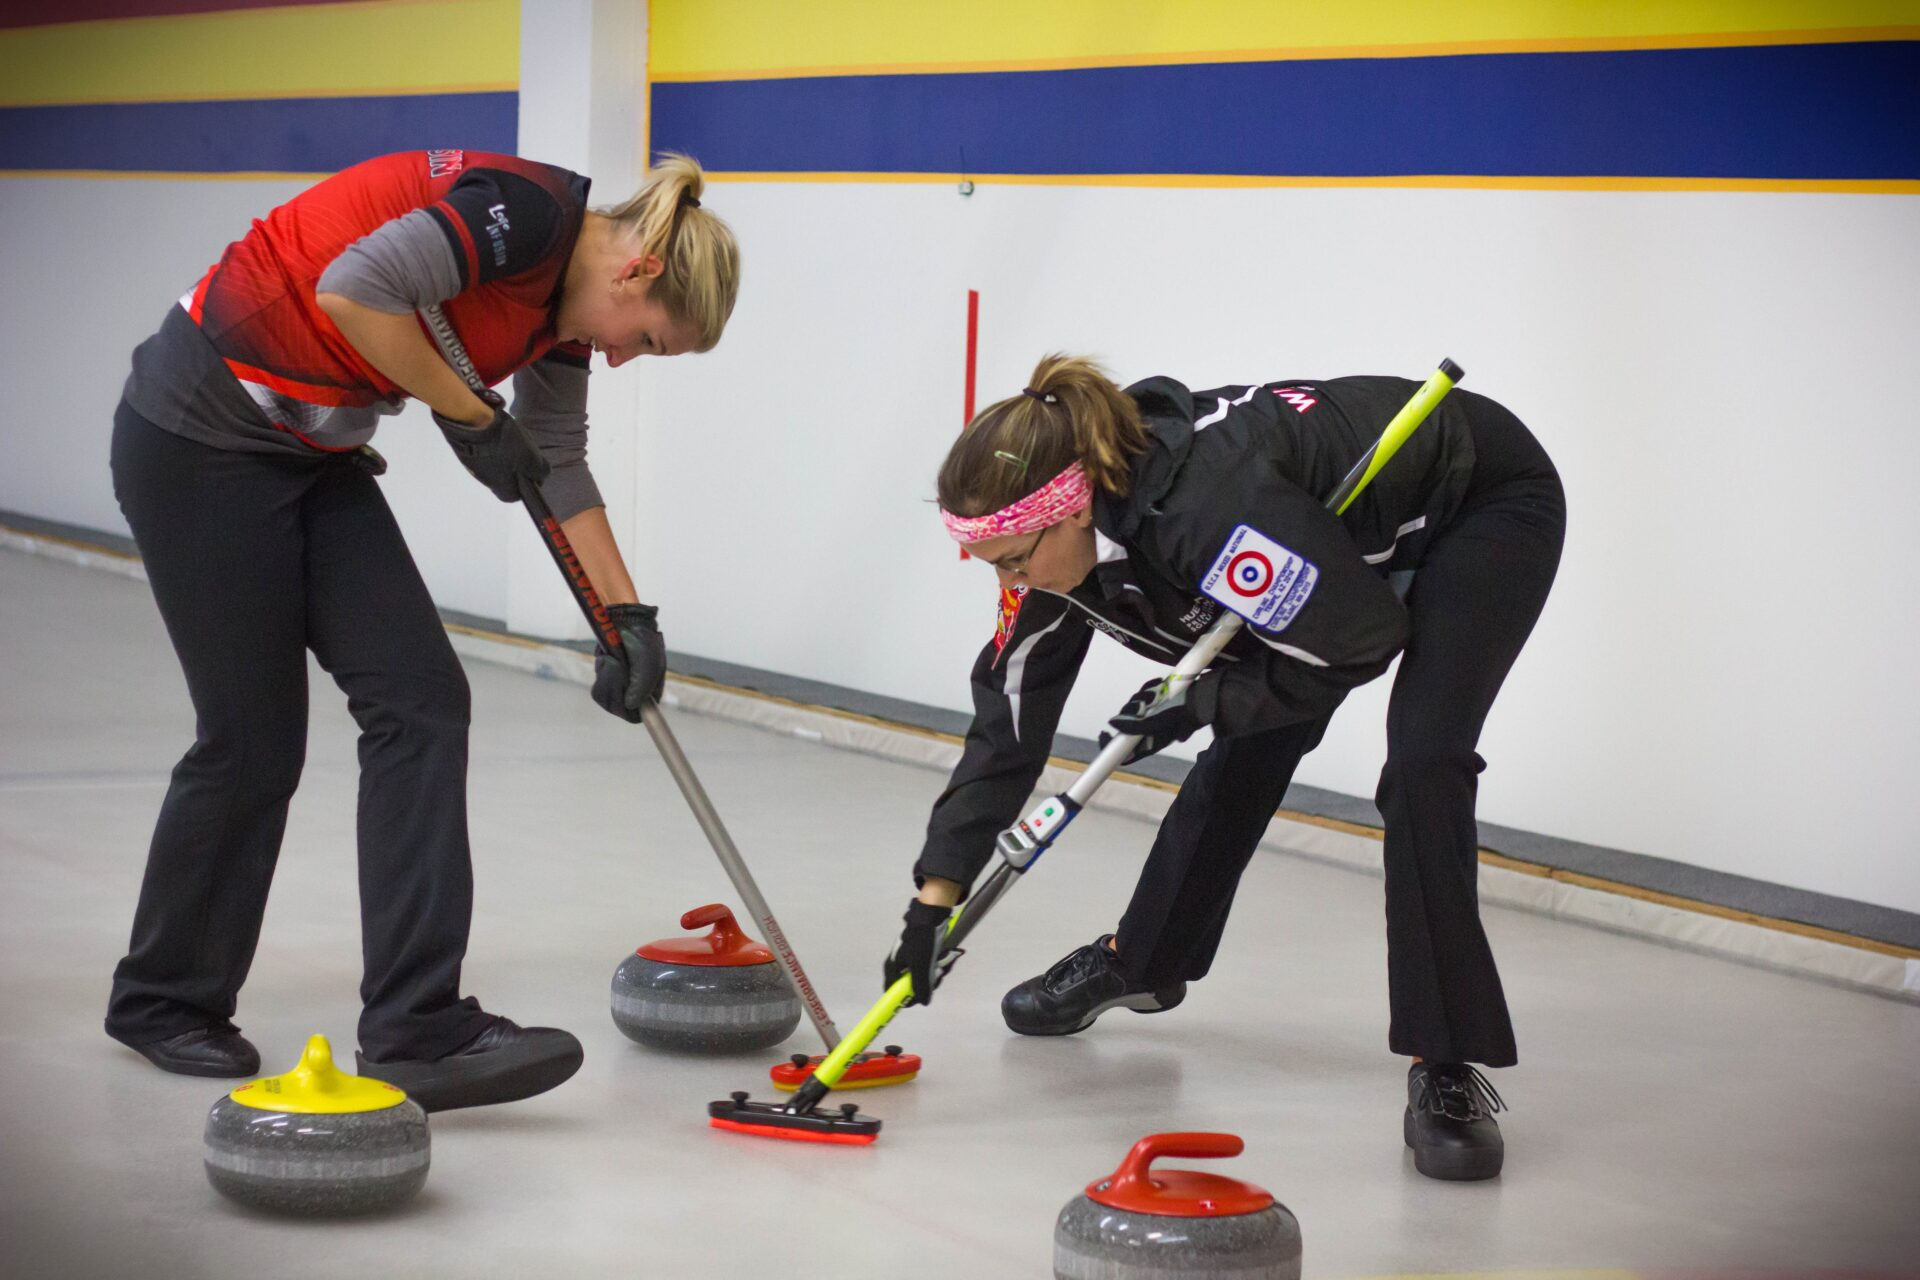 Members of Coyotes Curling Club hone their skills at Tempe Ice rink. Wrangler News photo by Alex J. Walker